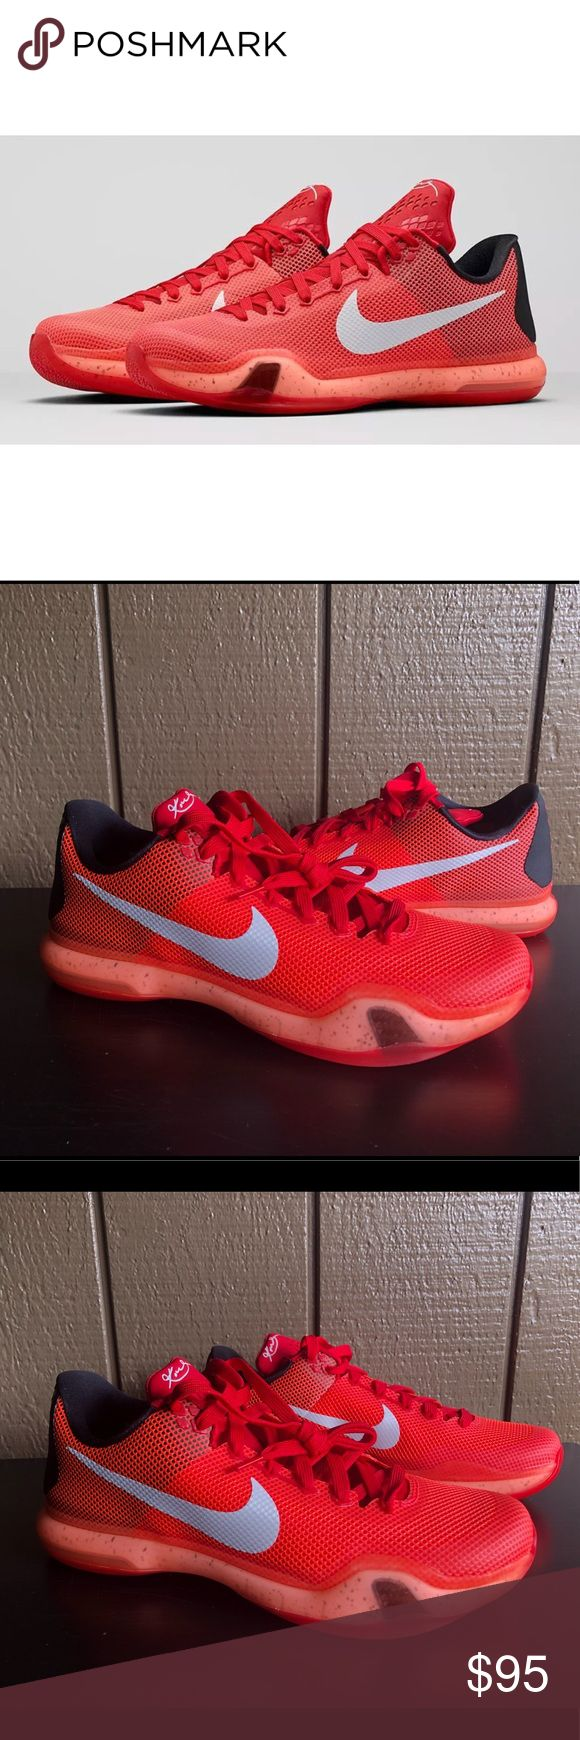 Nike Kobe X Majors Low Basketball Shoes Sz 10.5 Nike Kobe X Majors Low Basketball Shoes Men's Size 10.5 Red Crimson 705317-616   Brand : Nike   Style Code : 795317-616   Color : Red Crimson   Size : US Men's 10.5   100% Authentic   Brand new. No box. Never worn Nike Shoes Athletic Shoes